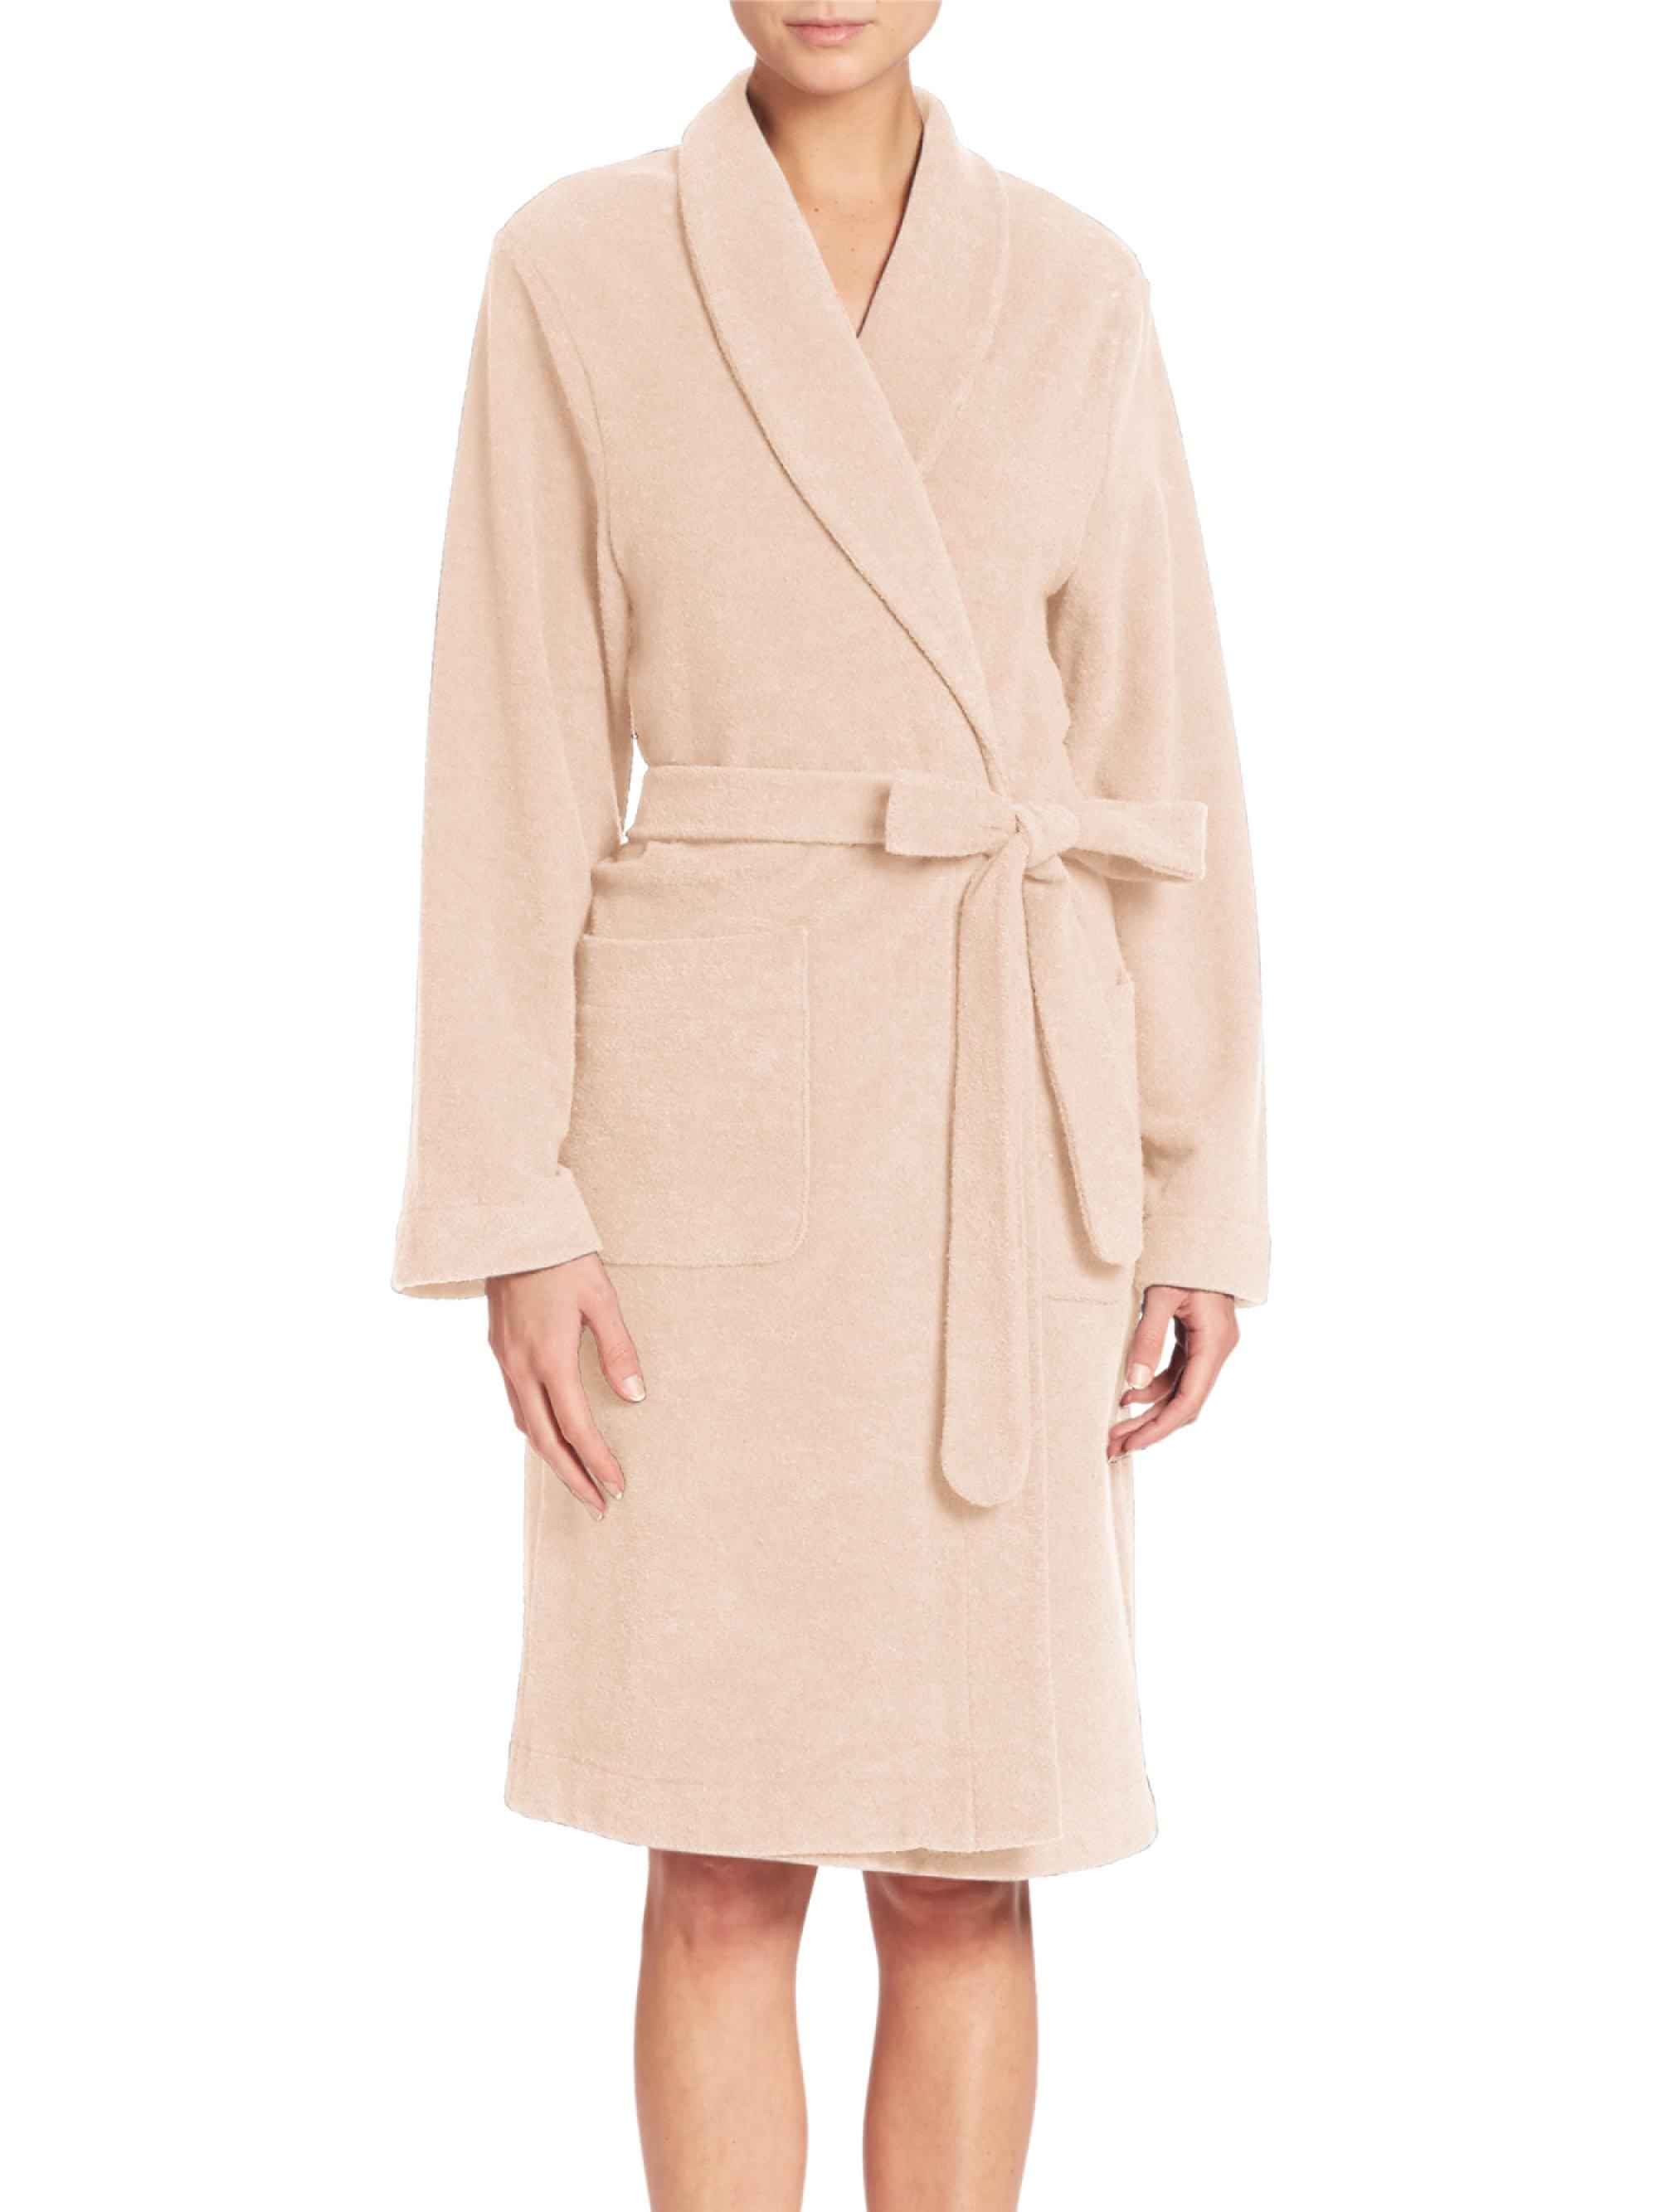 92ace9f033 Lyst - Hanro Terry Robe in Natural